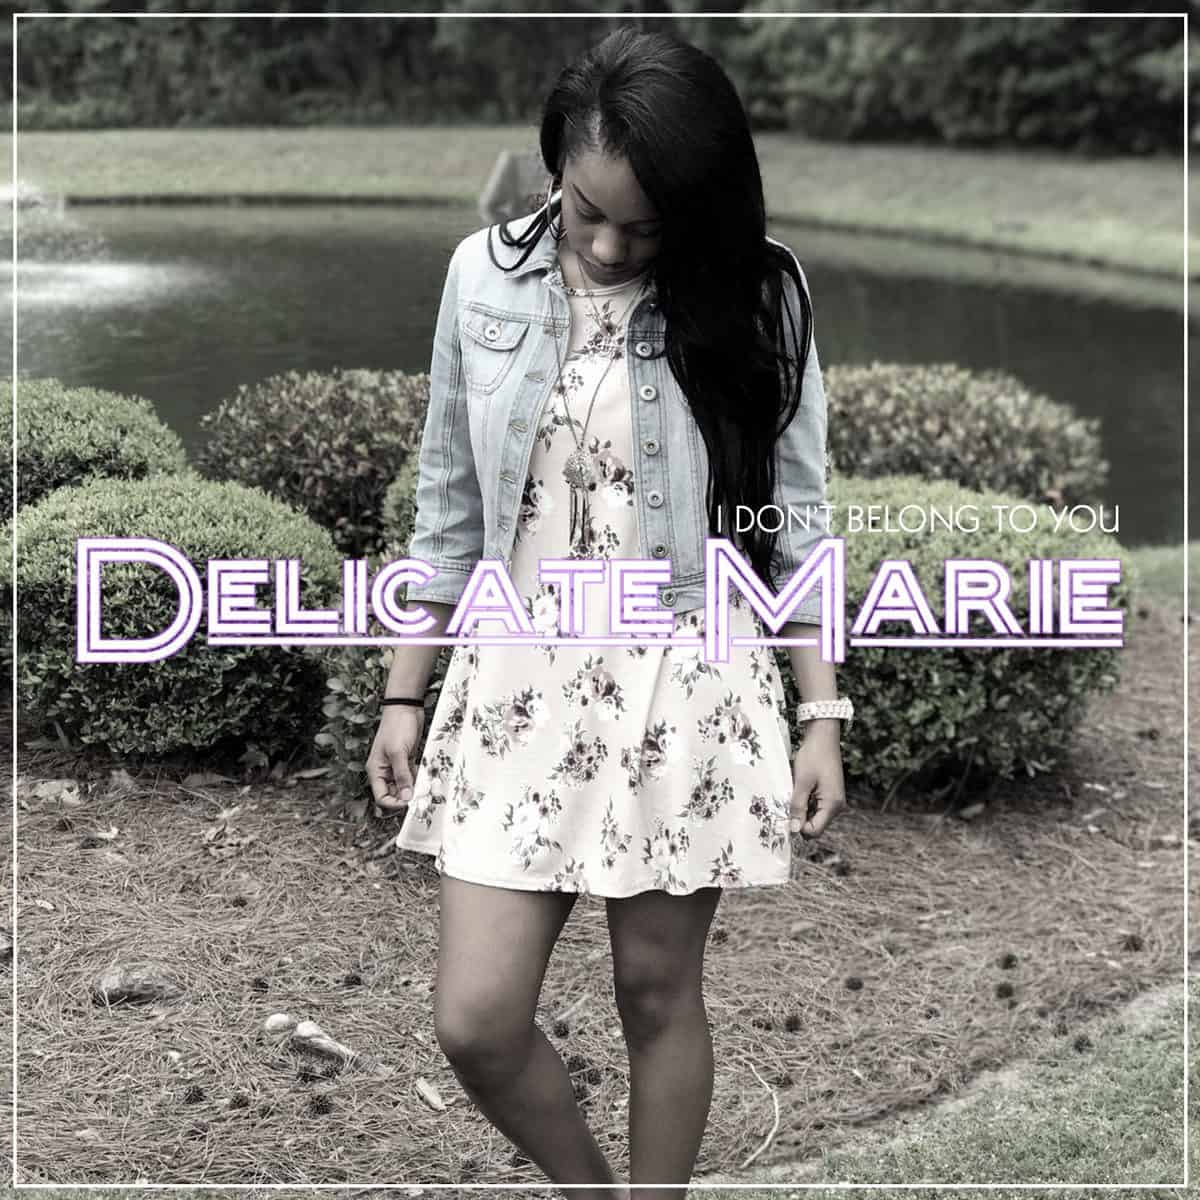 I Don't Belong To You by Delicate Marie